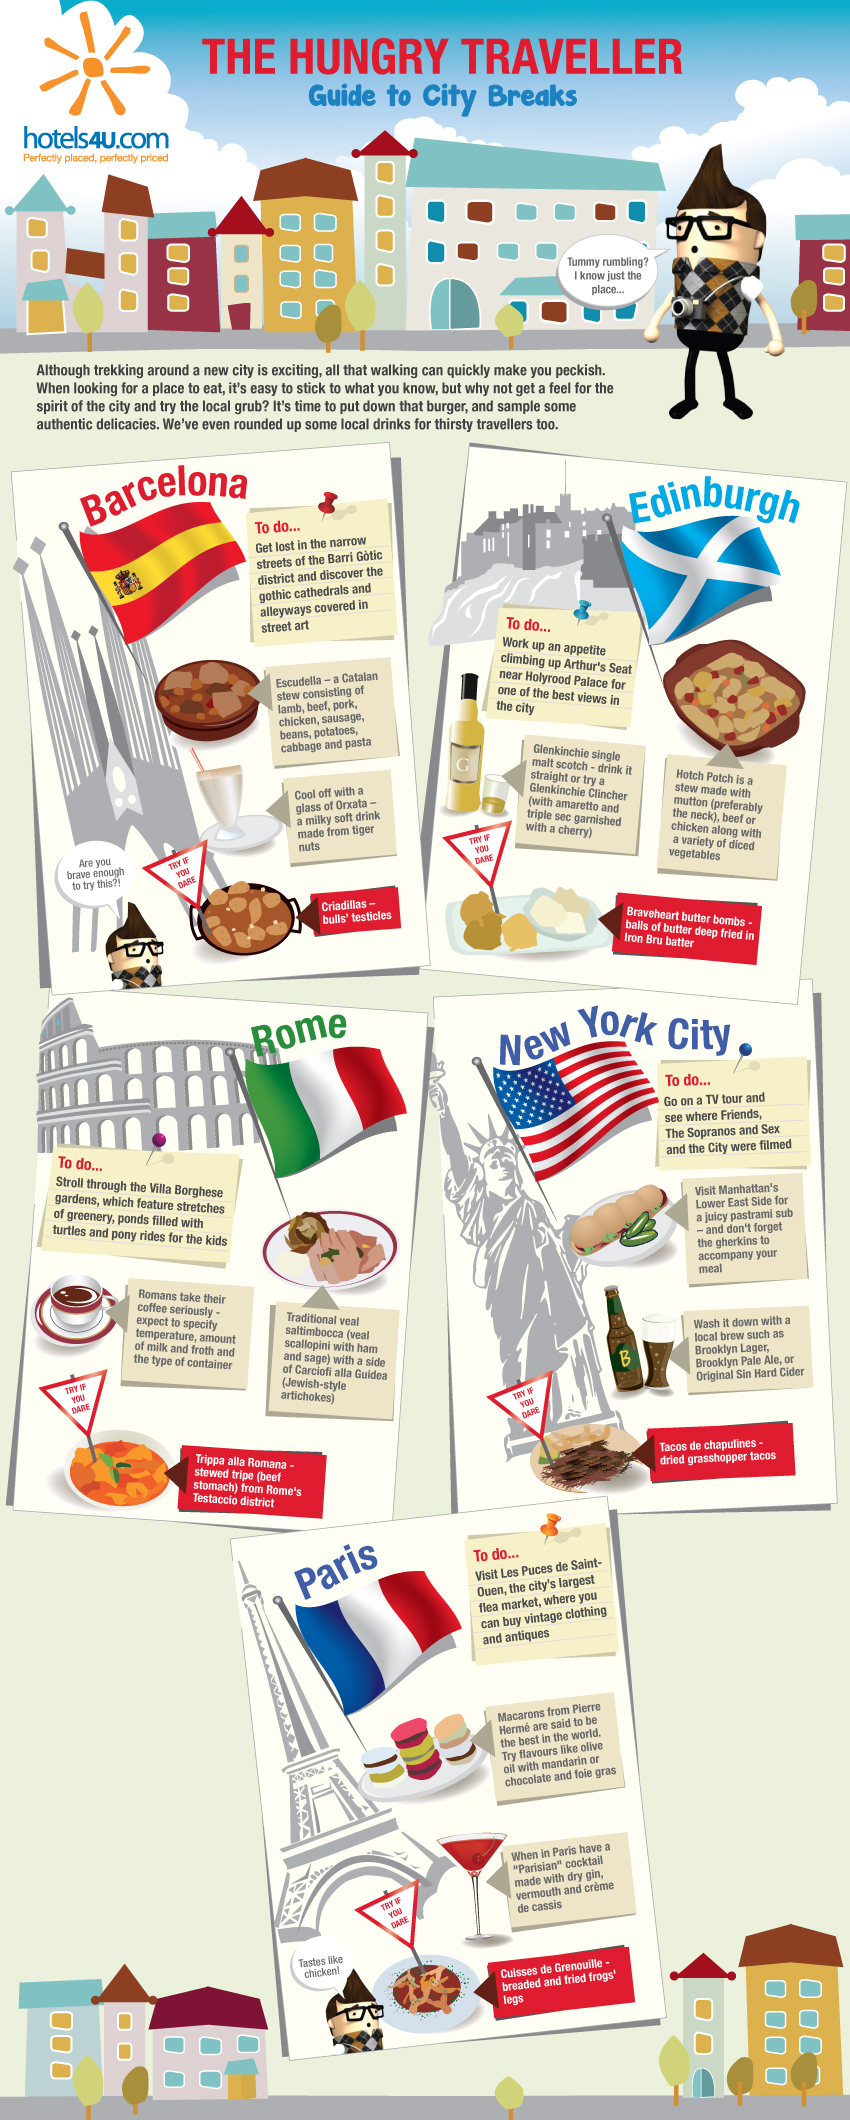 the-hungry-traveller-guide-to-city-breaks-by-hotels4ucom_50ae035918b36